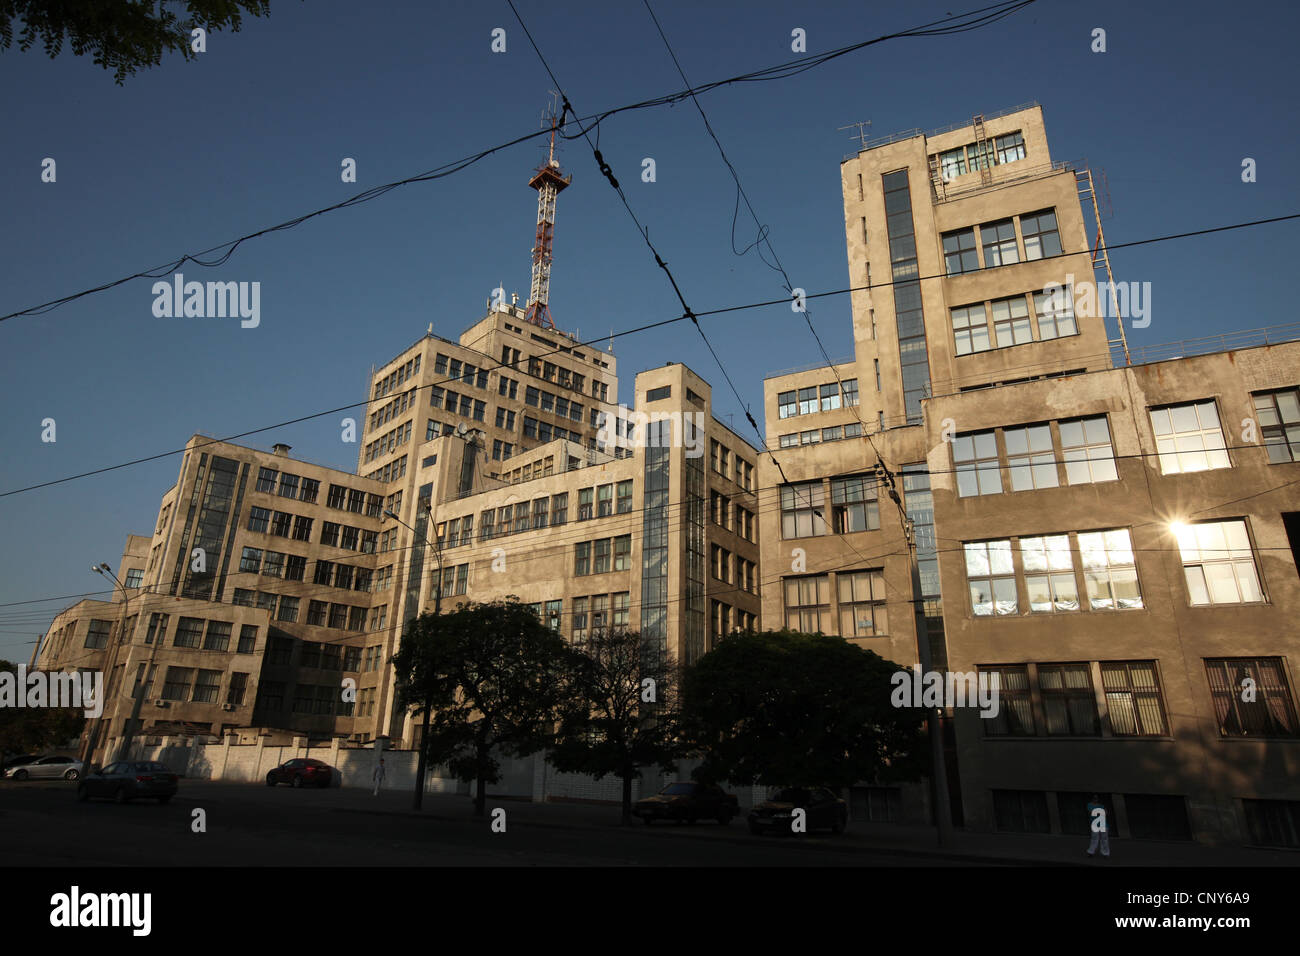 Gosprom (State Industry Building) constructivist building in Freedom Square in Kharkov, Ukraine. - Stock Image